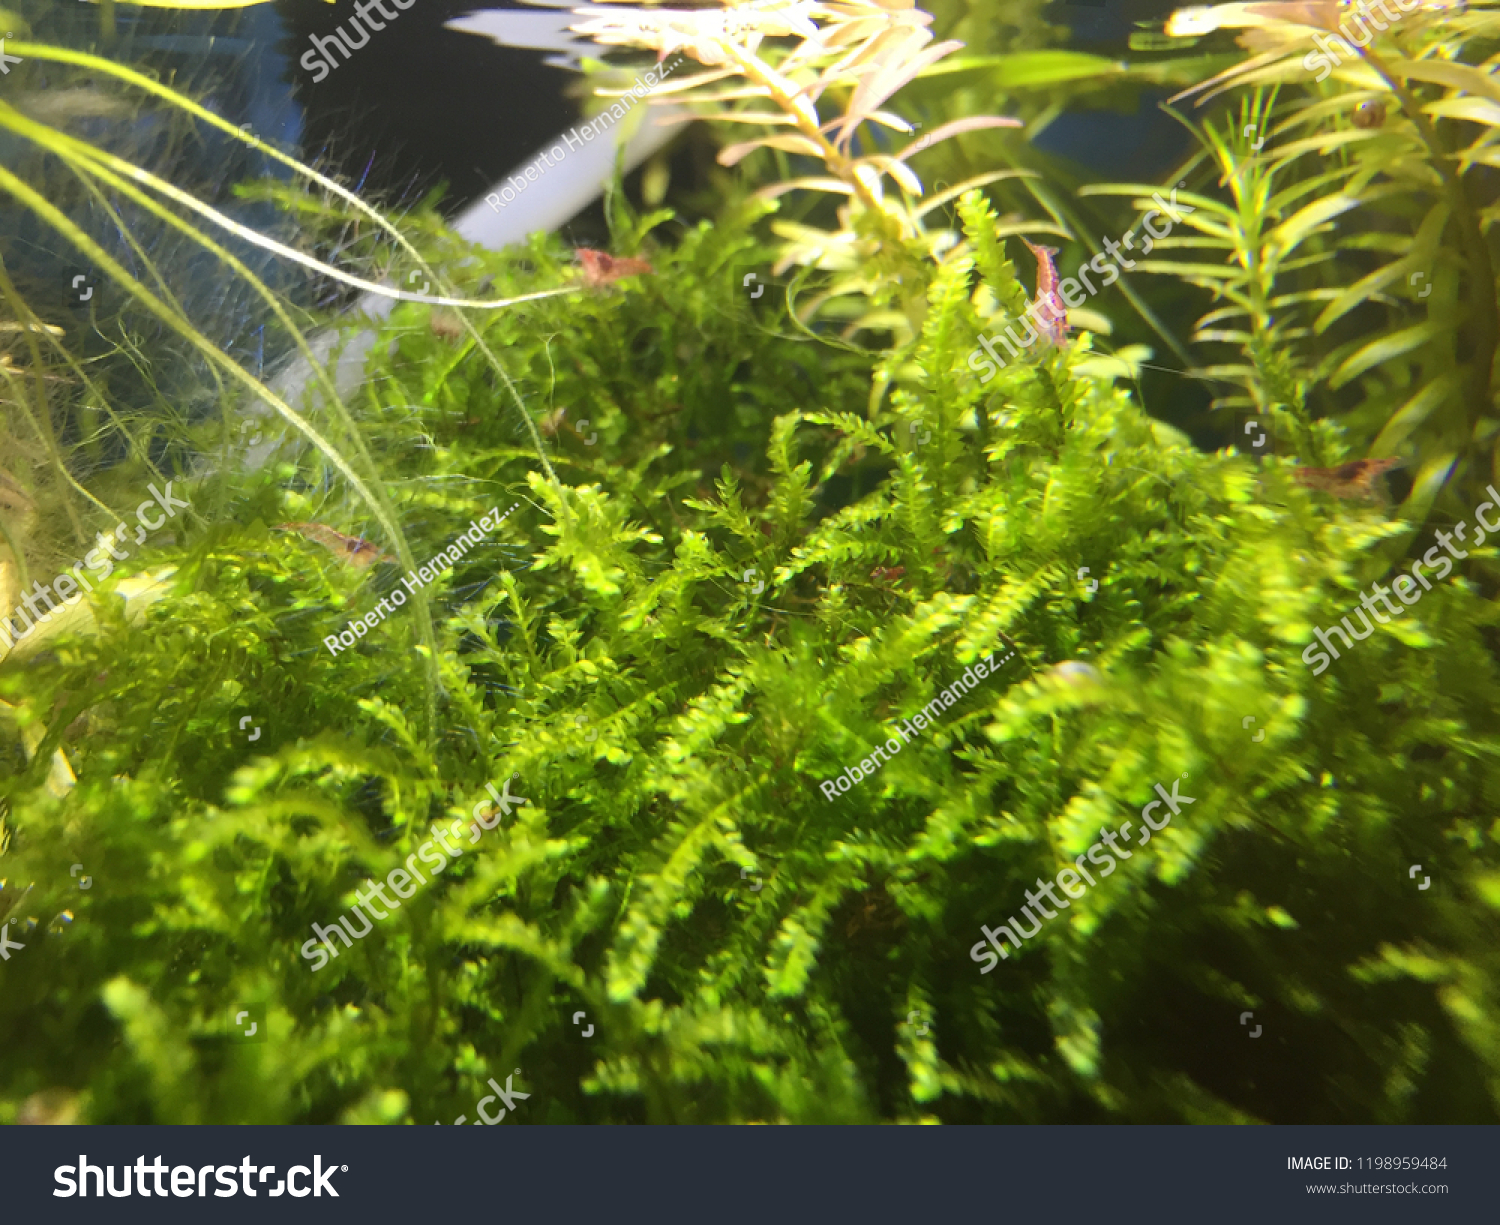 Shrimp Tank Aquarium Aquascape Stock Photo Edit Now 1198959484